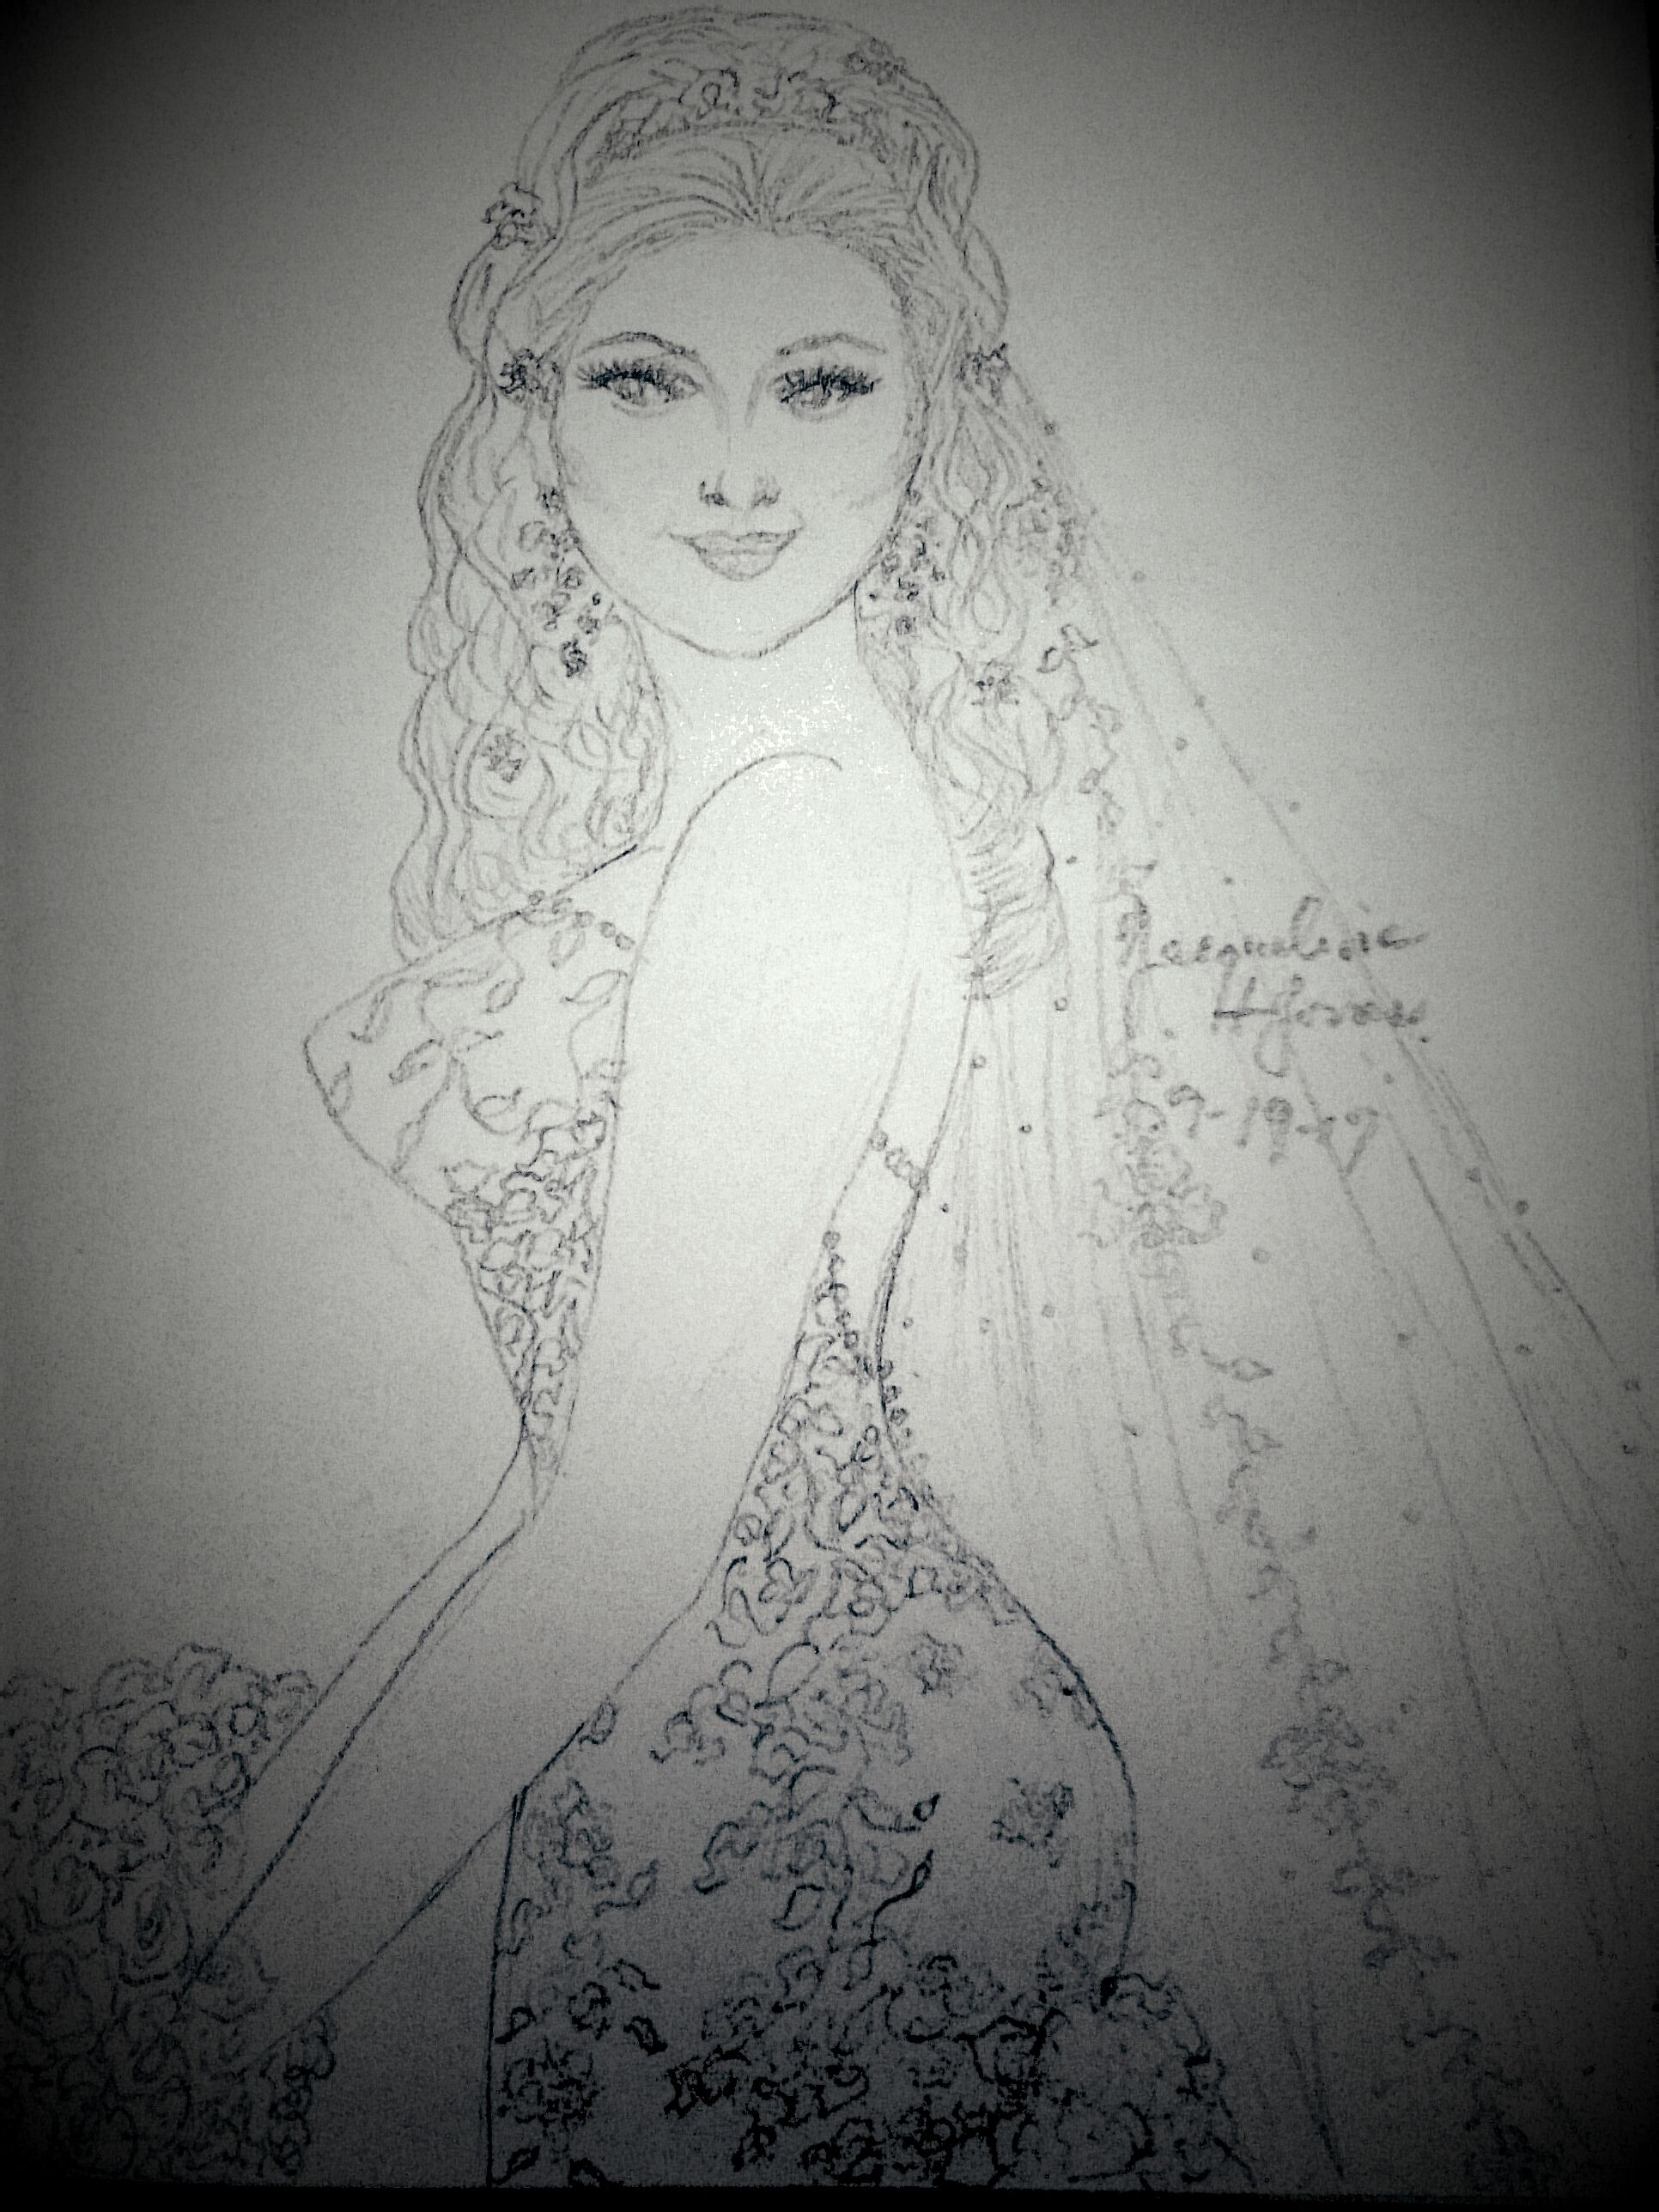 Pin by jacqueline jones on my bridal sketches of my designs